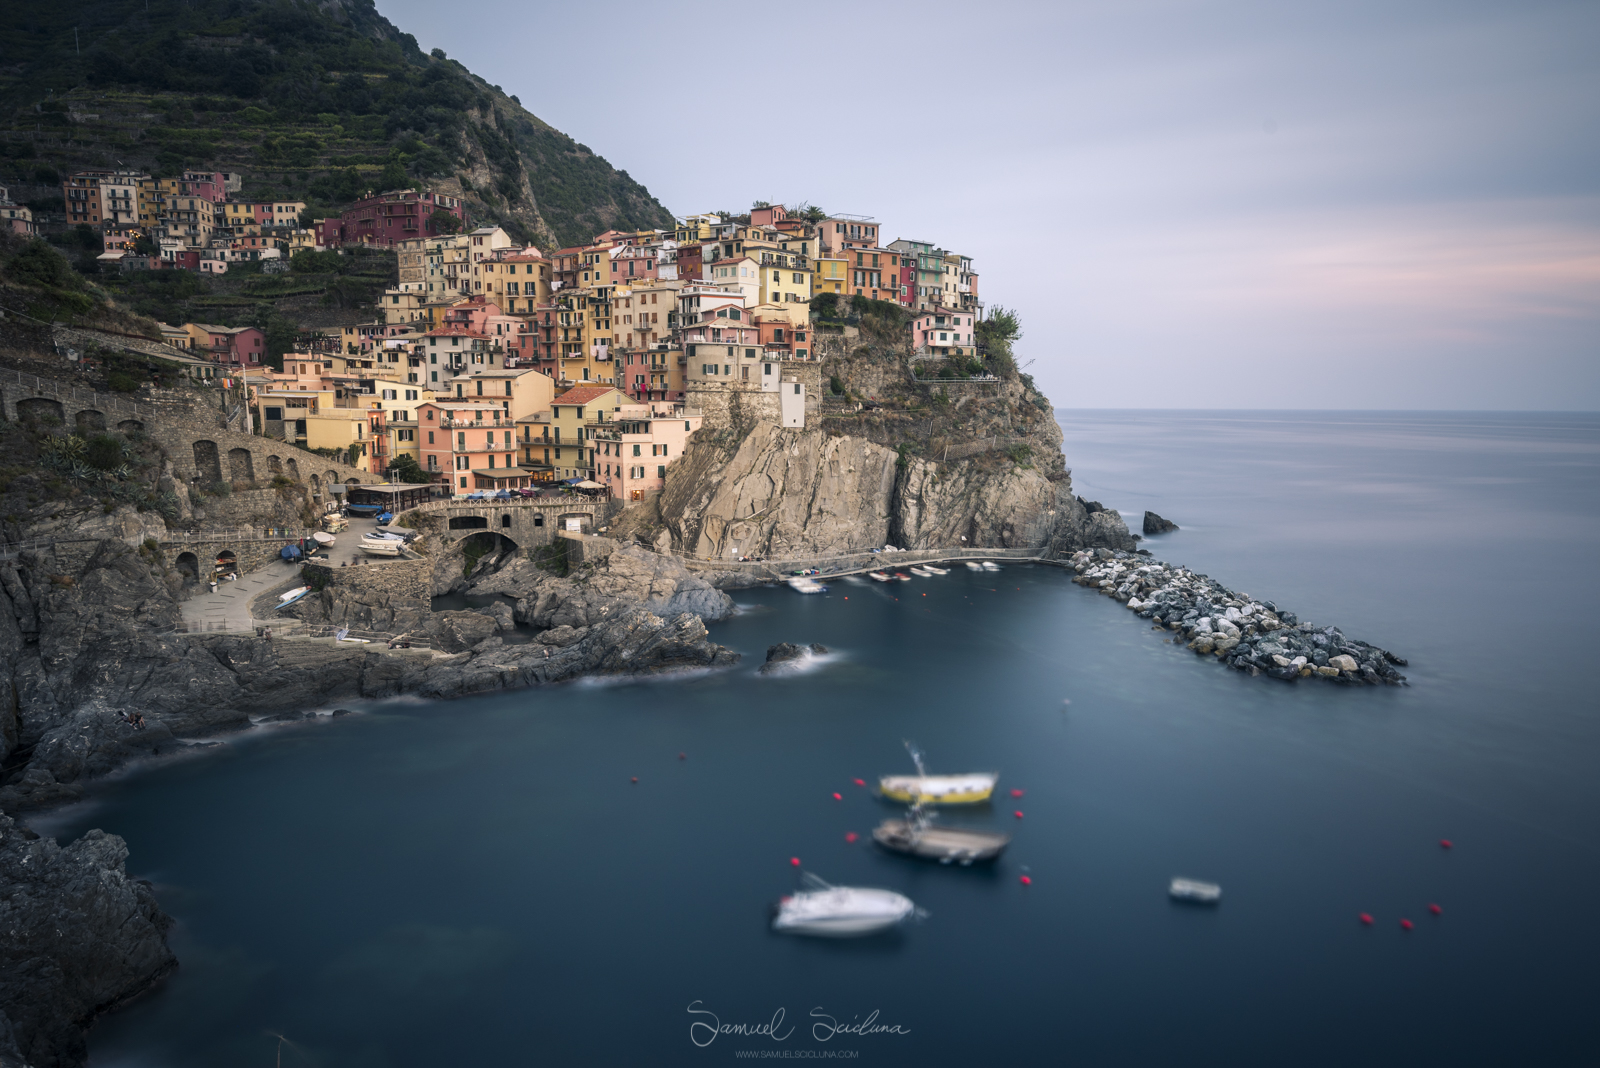 An 8 minute exposure of Manarola at sunset using a Haida Pro 100 filter holder and Haida 10 stop neutral density filter.